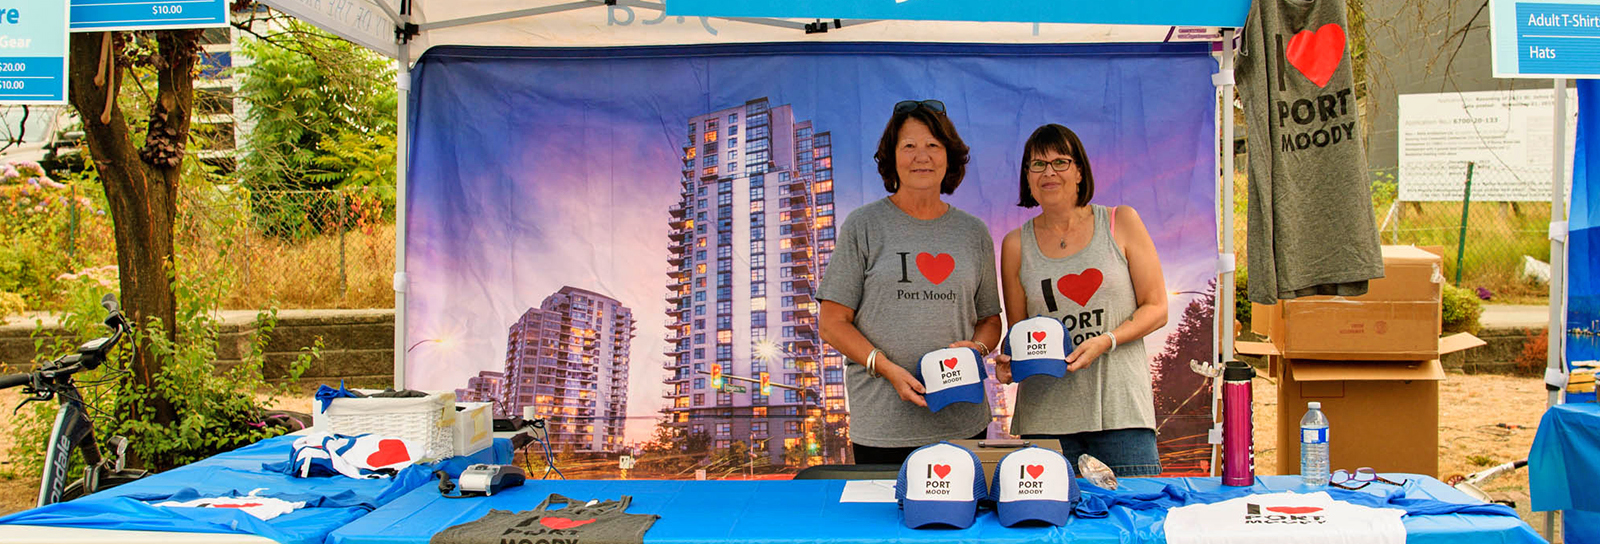 Women selling Port Moody gear